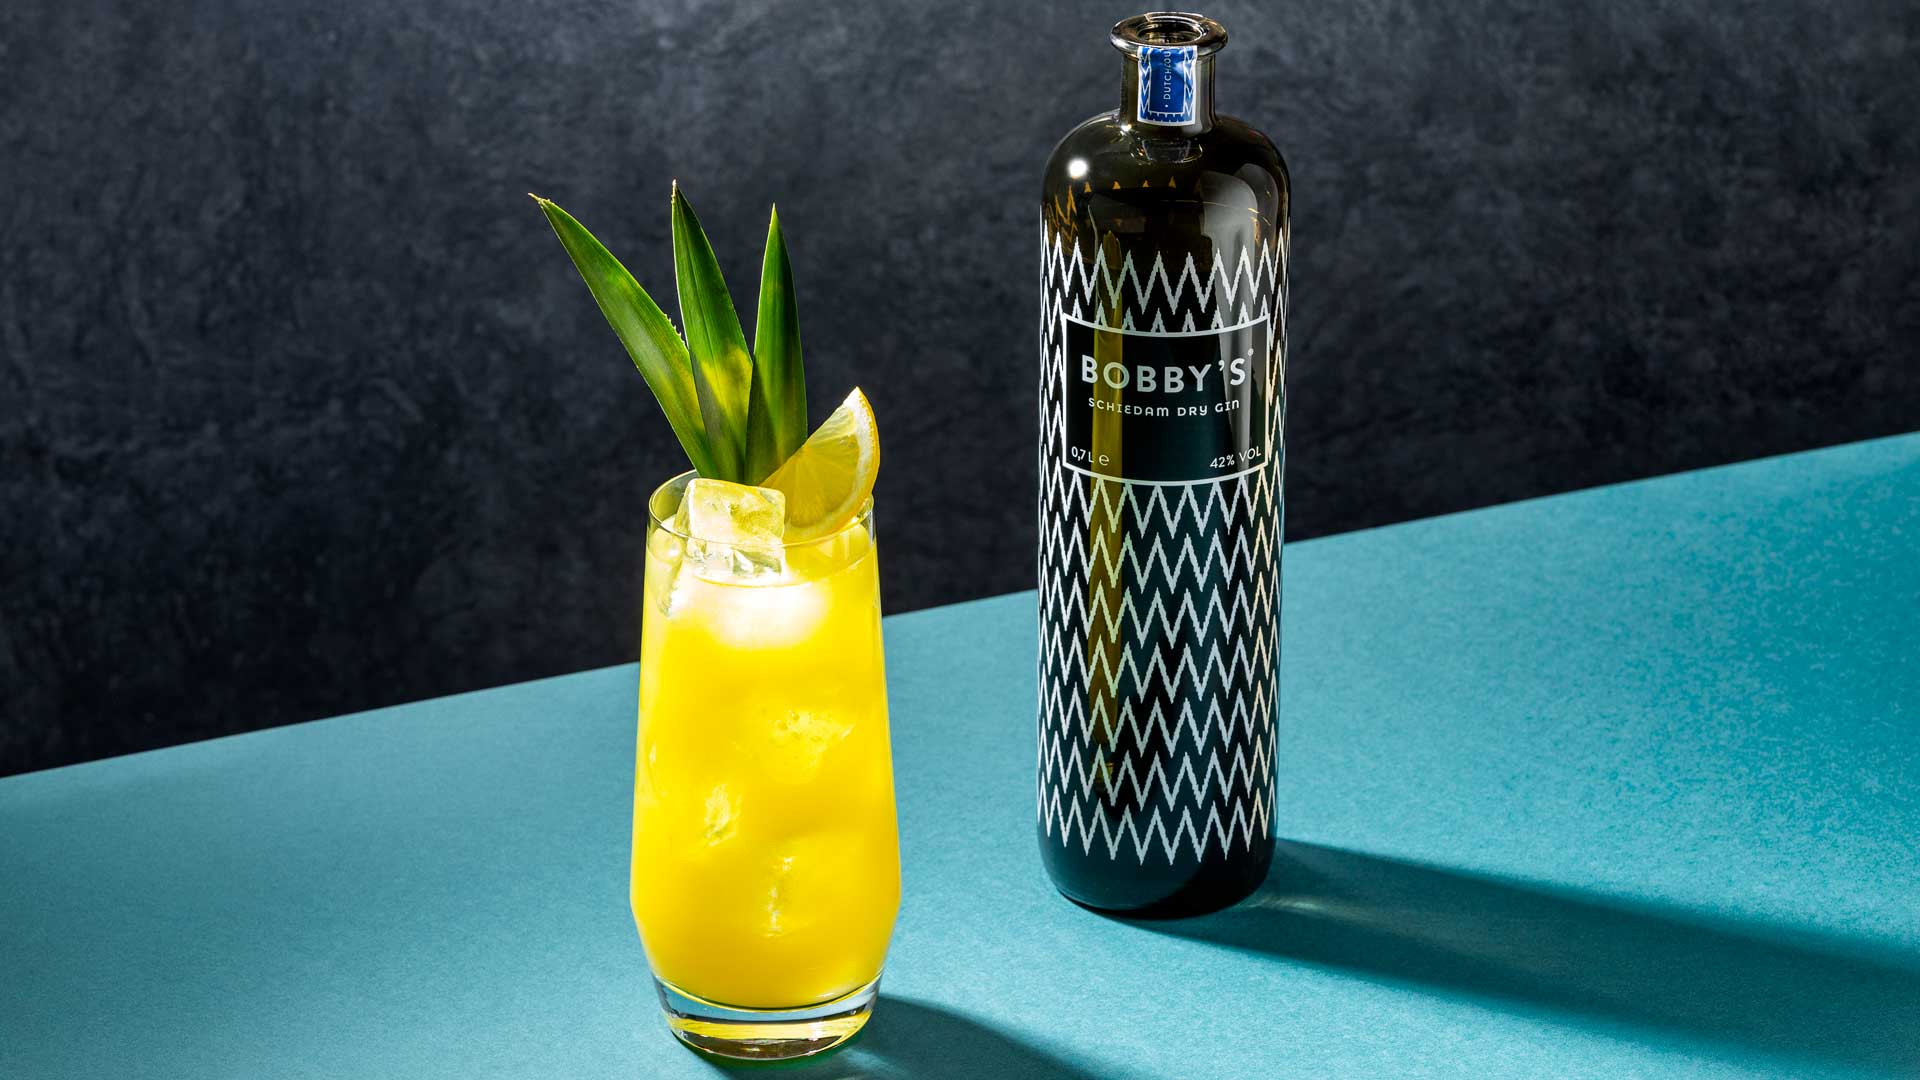 3-ricette-estive-cocktail-a-base-Bobby's-Gin-Coqtail-Milano